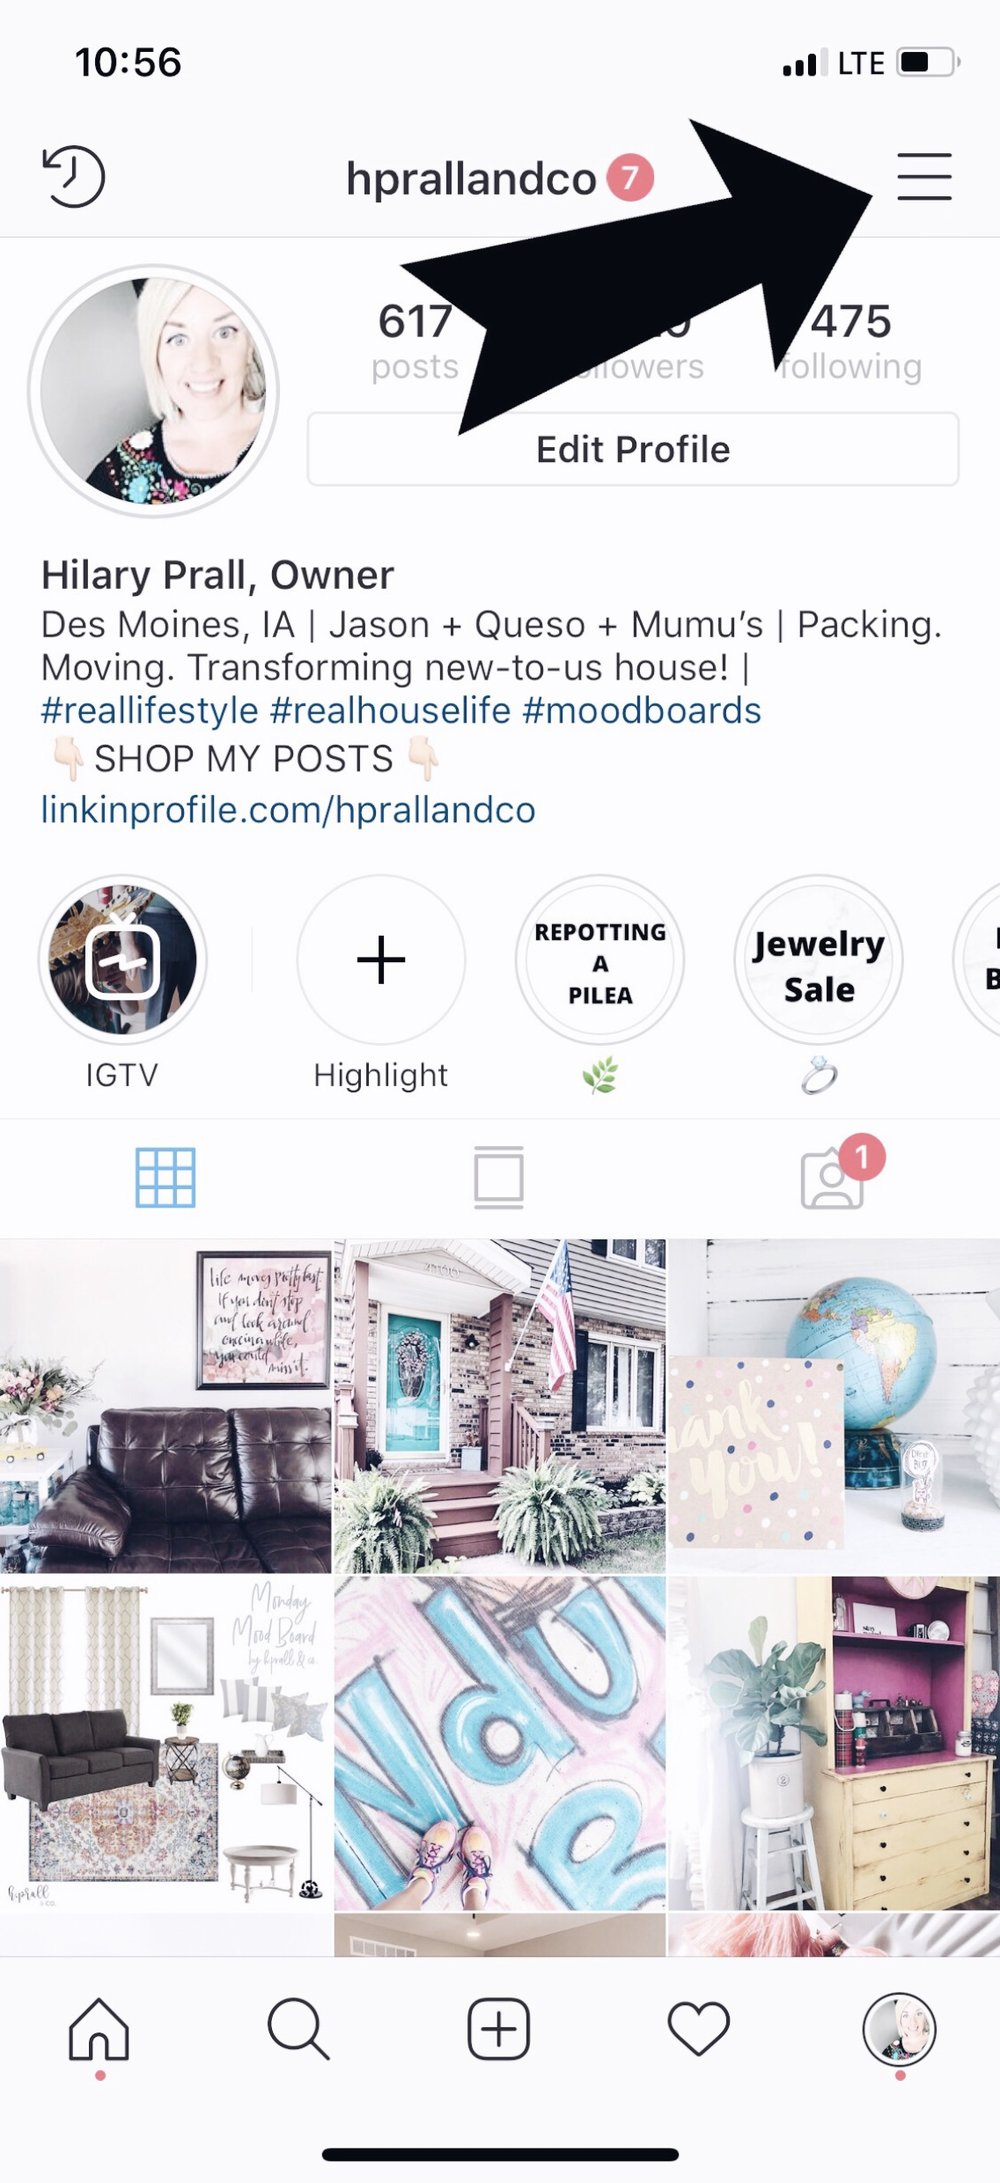 How to Save Posts on Instagram-4